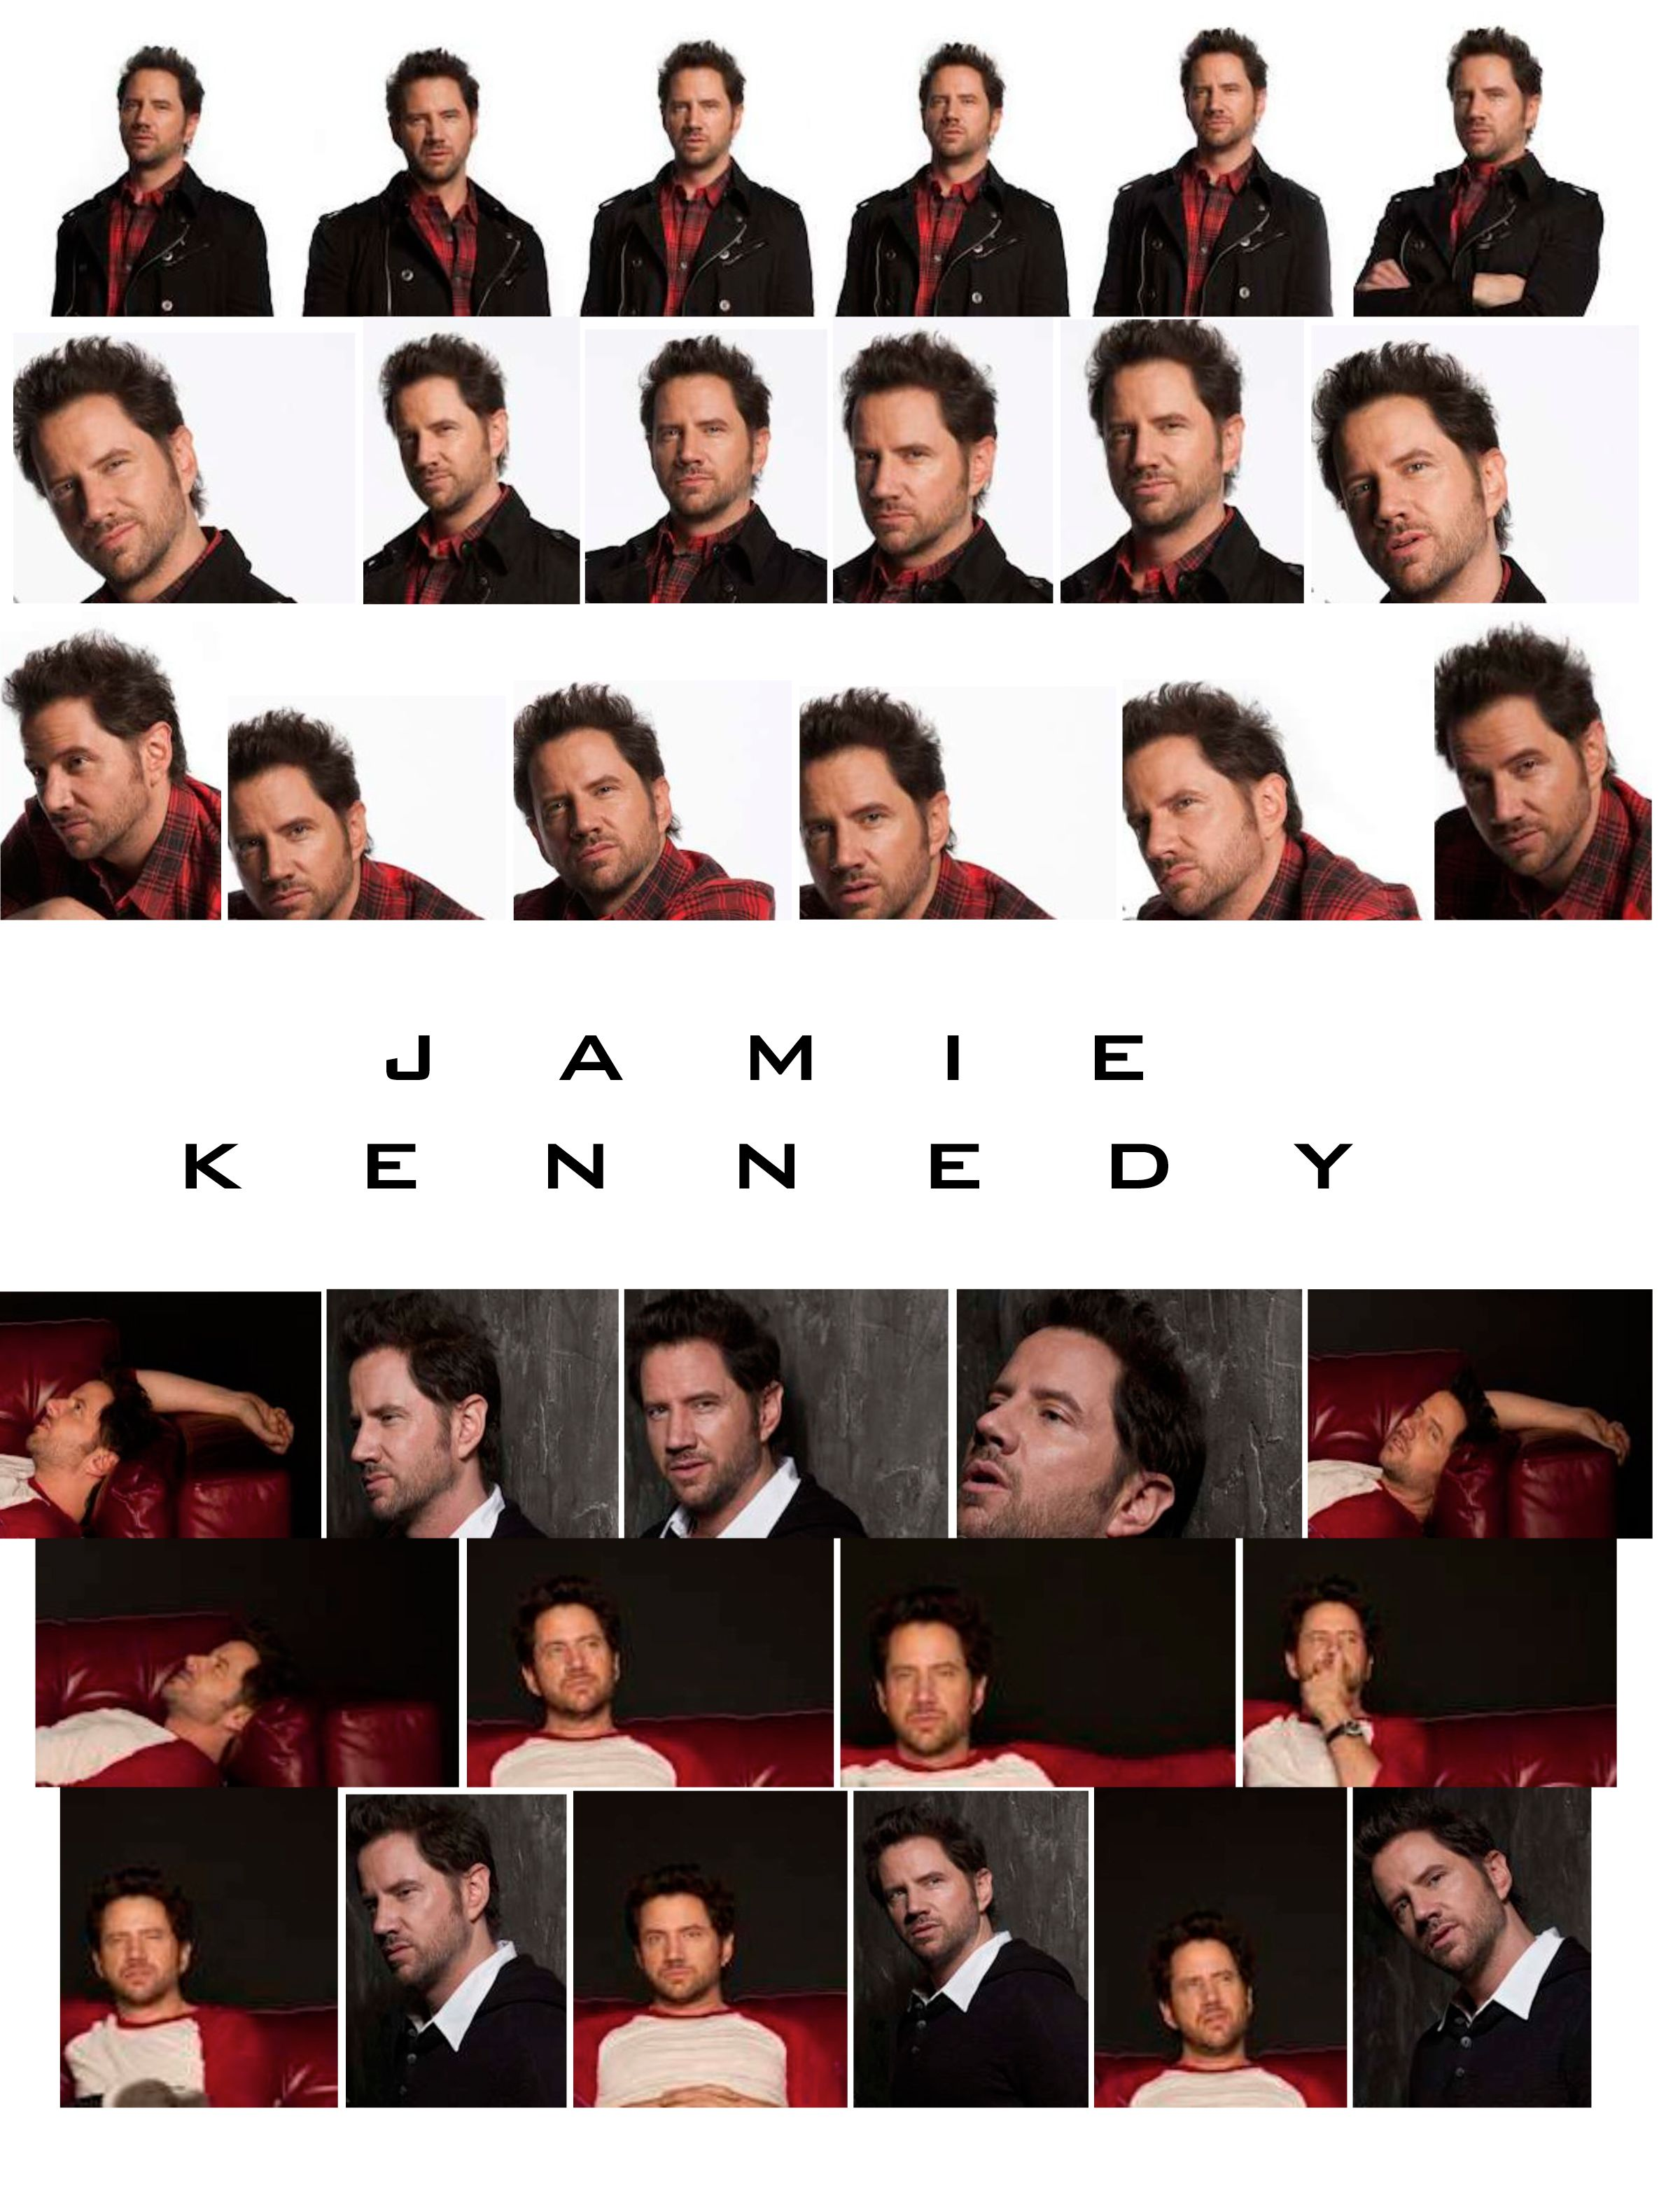 Get ready to laugh like you never had before. Listen to the @LadyBrain interview with comedian, Jamie Kennedy: http://ladybrain.libsyn.com/webpage/lady-brain-8-18-12-hr2-seg2    Find more juicy interviews and topics at www.theladybrainshow.com. Catch them on Comcast 104 on Saturday nights at 10p. Follow @LadyBrain on FB: https://www.facebook.com/ladybrain